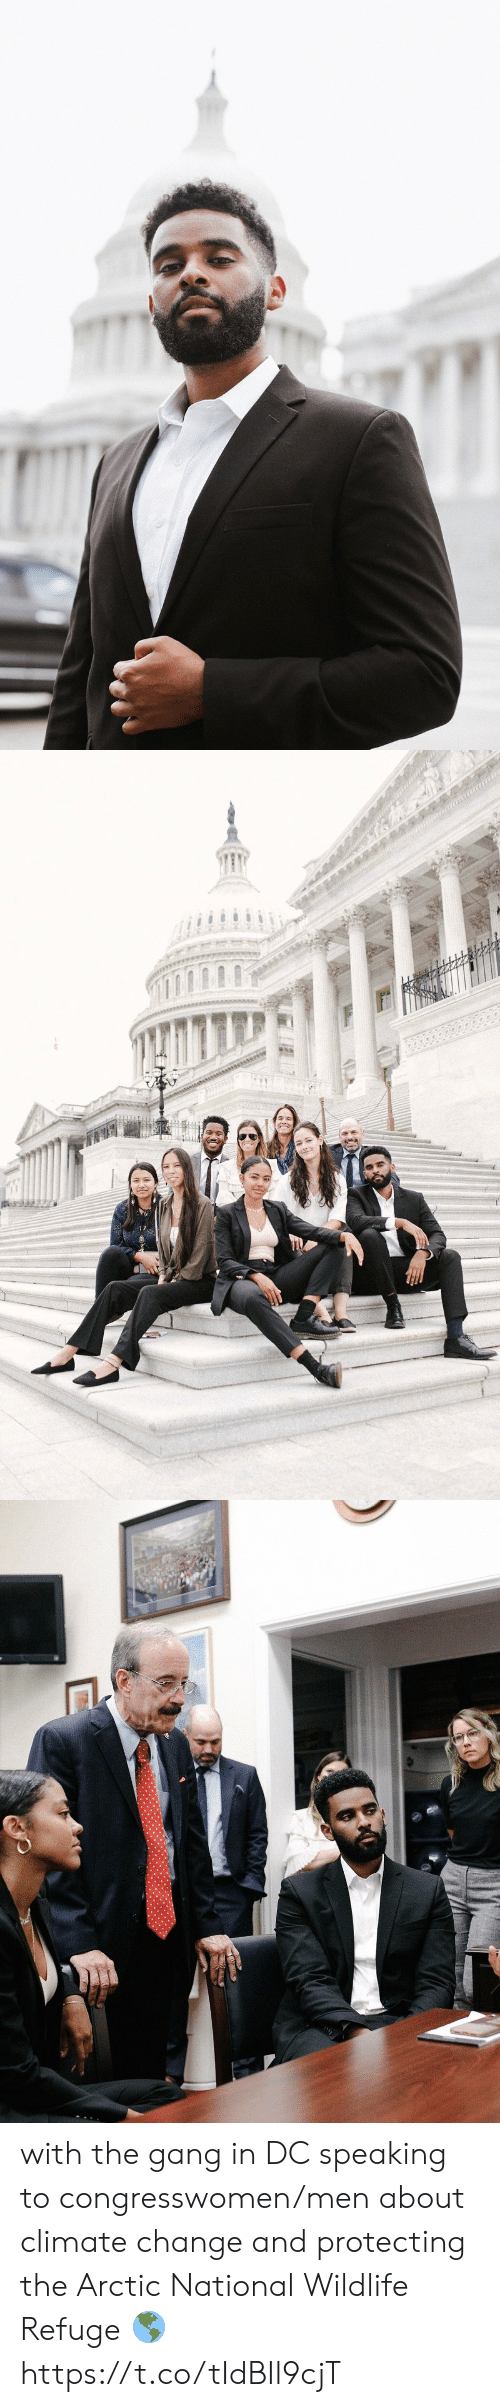 Funny, Gang, and Change: with the gang in DC speaking to congresswomen/men about climate change and protecting the Arctic National Wildlife Refuge 🌎 https://t.co/tIdBIl9cjT